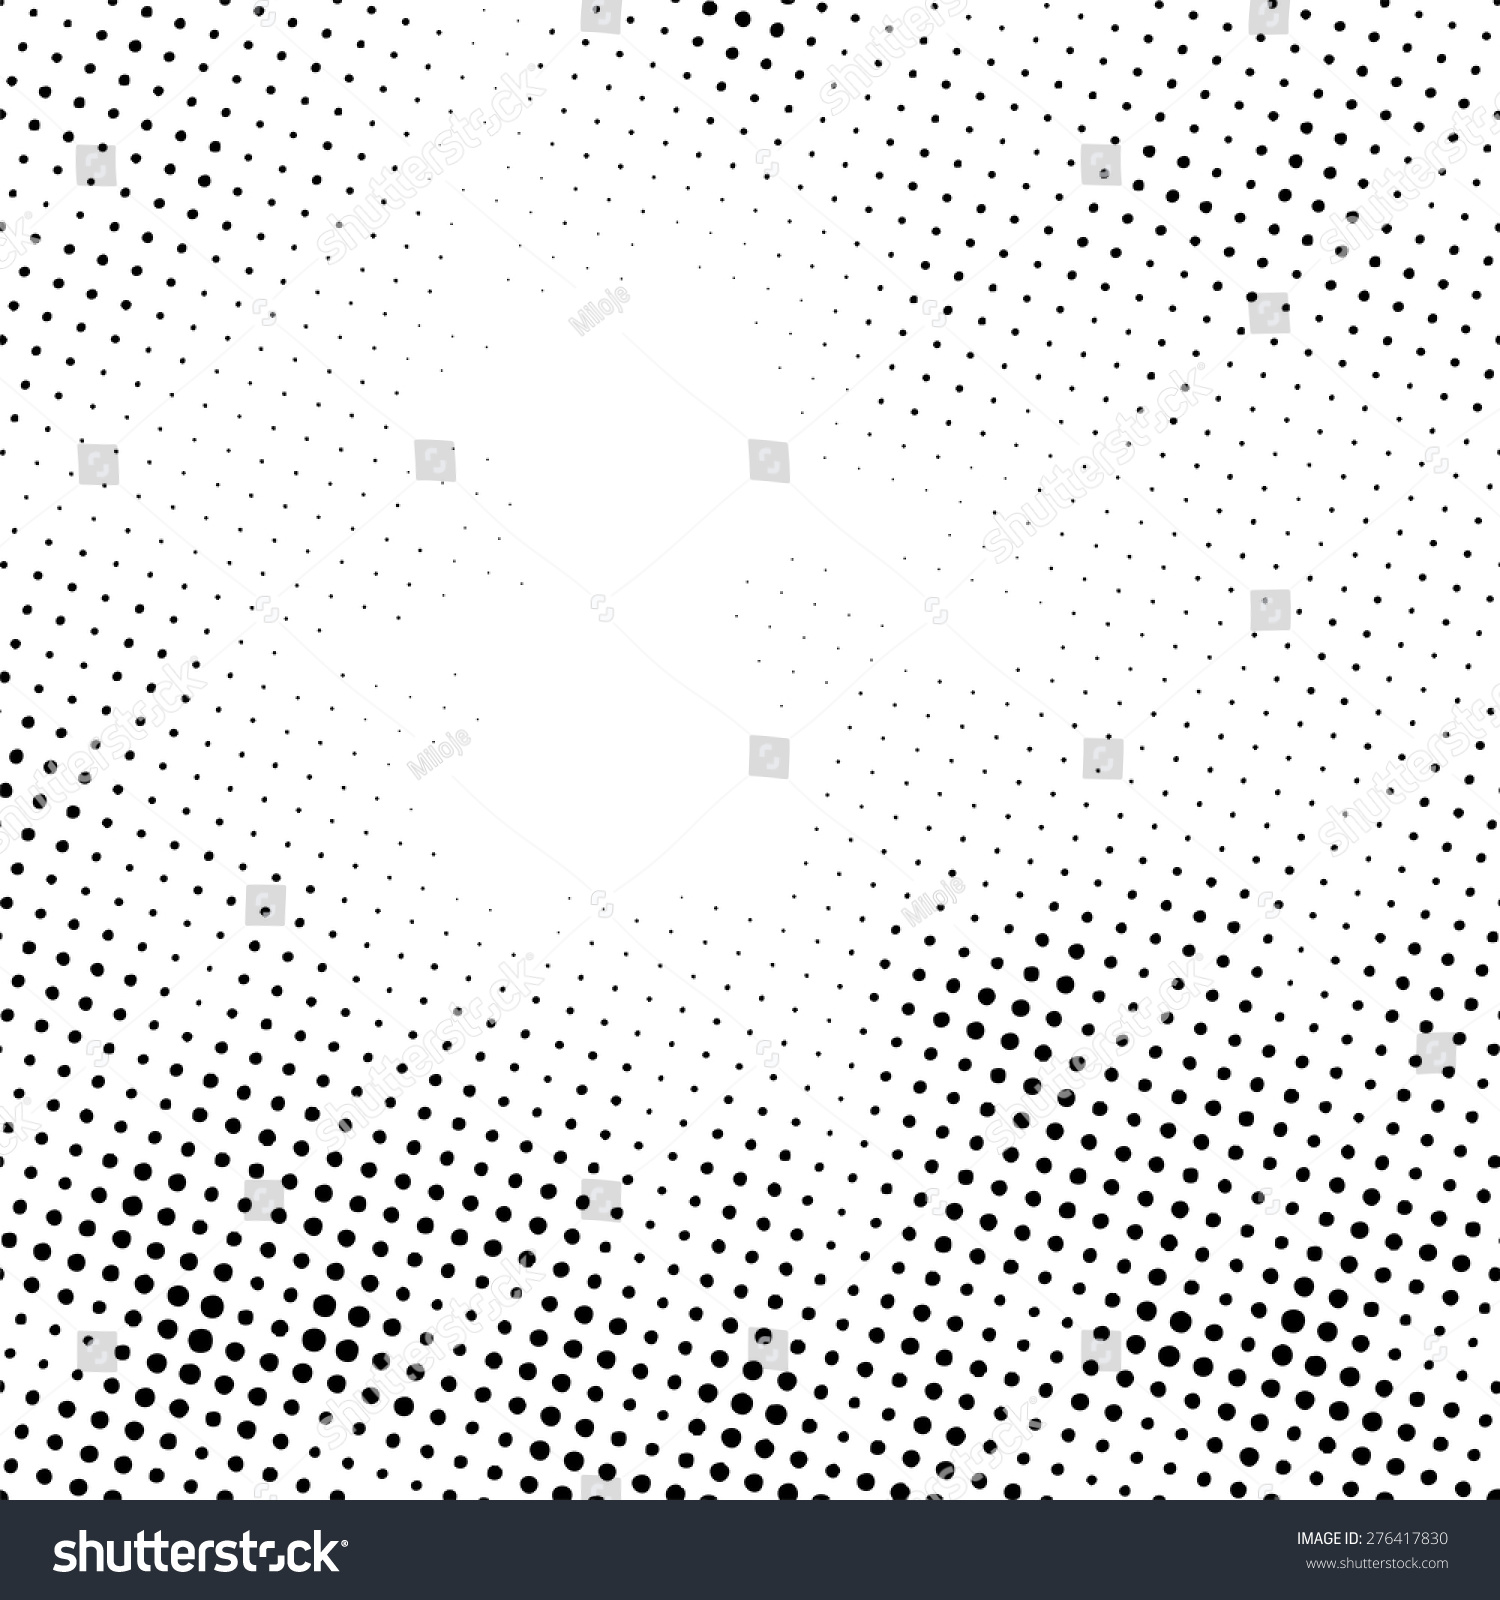 free vector grunge halftone - photo #48